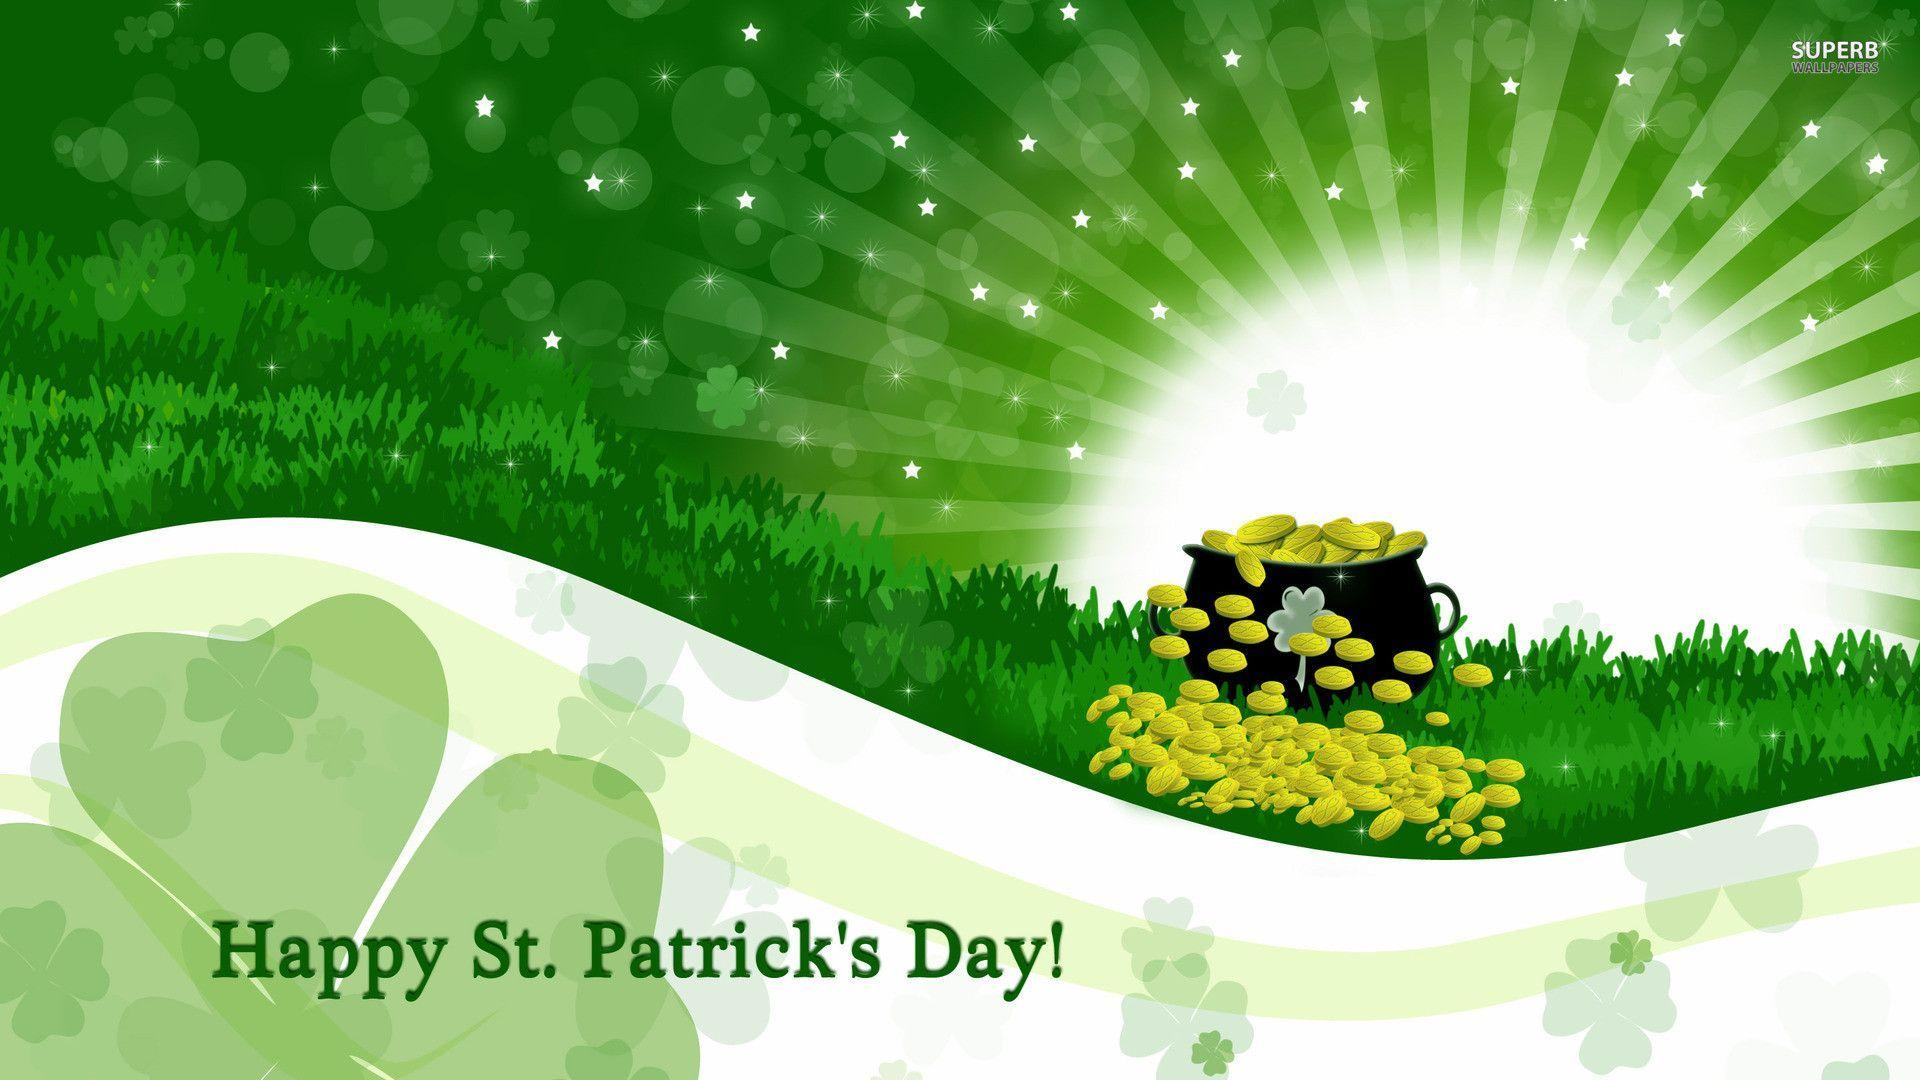 Happy Saint Patrick's Day! wallpaper - Holiday wallpapers - #